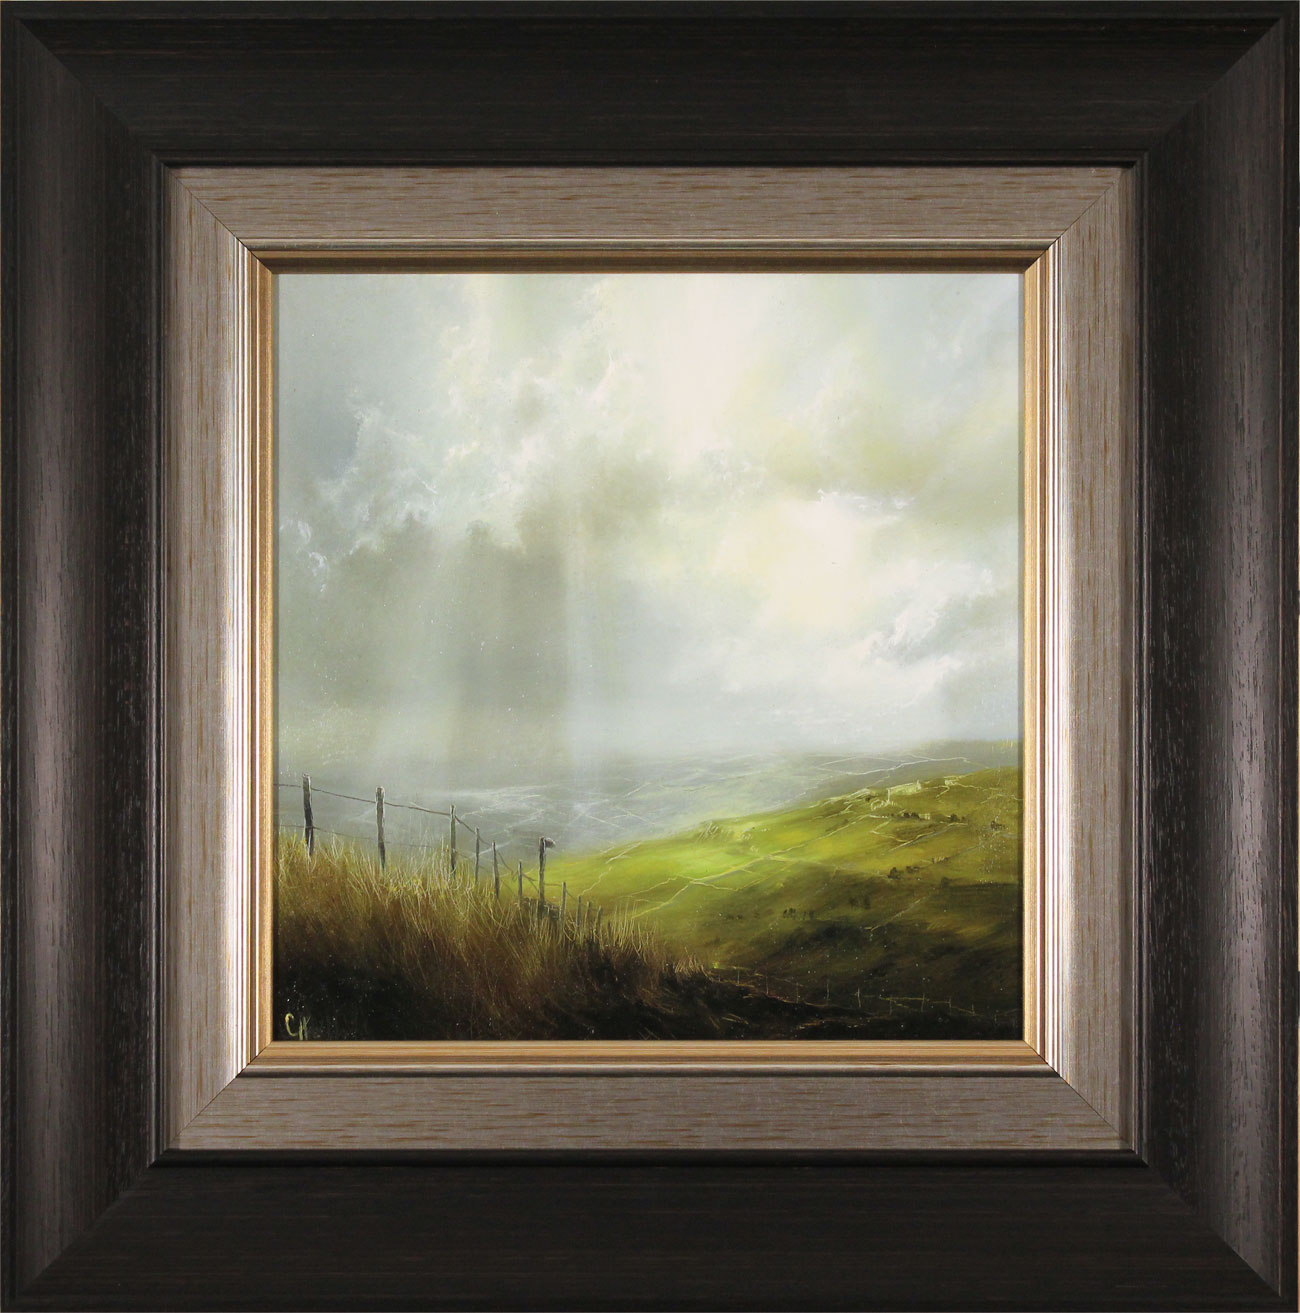 Clare Haley, Original oil painting on panel, Capture the Moment. Click to enlarge